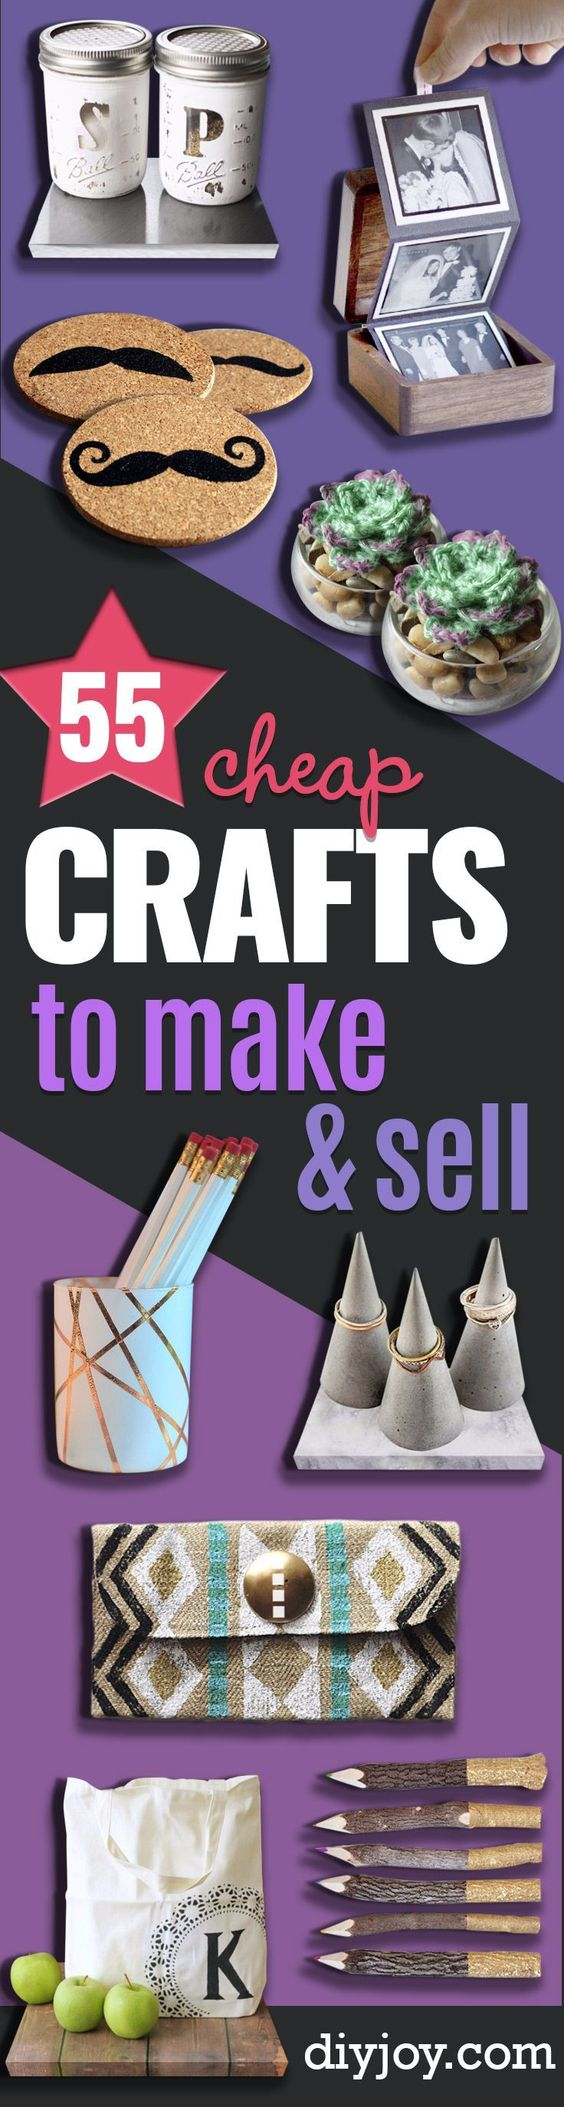 55 cheap crafts to make and sell craft fairs crafts and